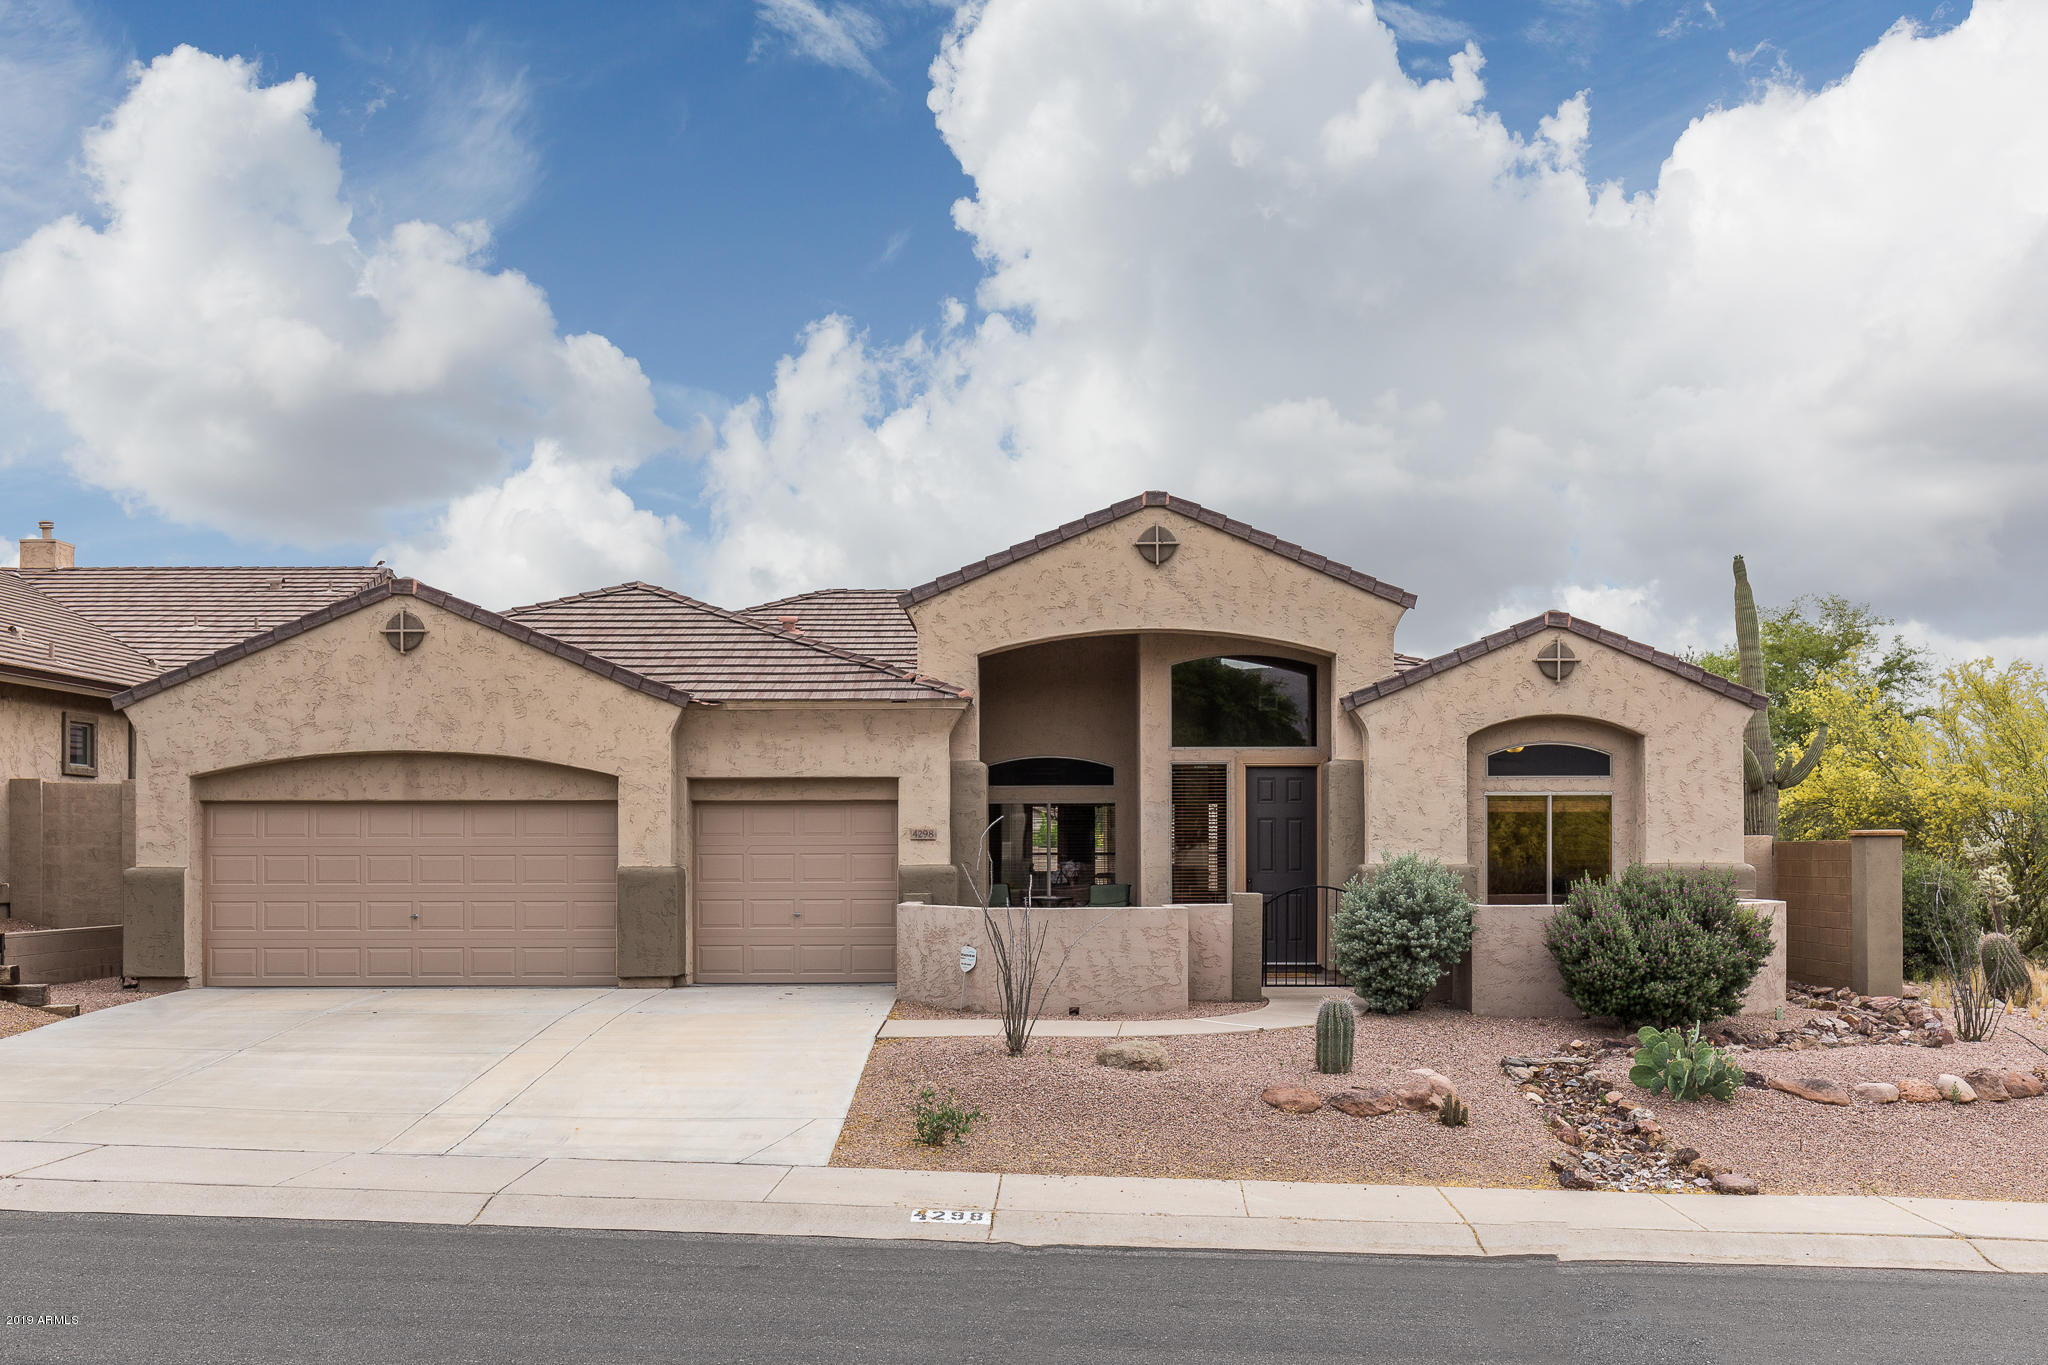 MLS 5922096 4298 S TECOMA Trail, Gold Canyon, AZ 85118 Gold Canyon AZ Superstition Foothills